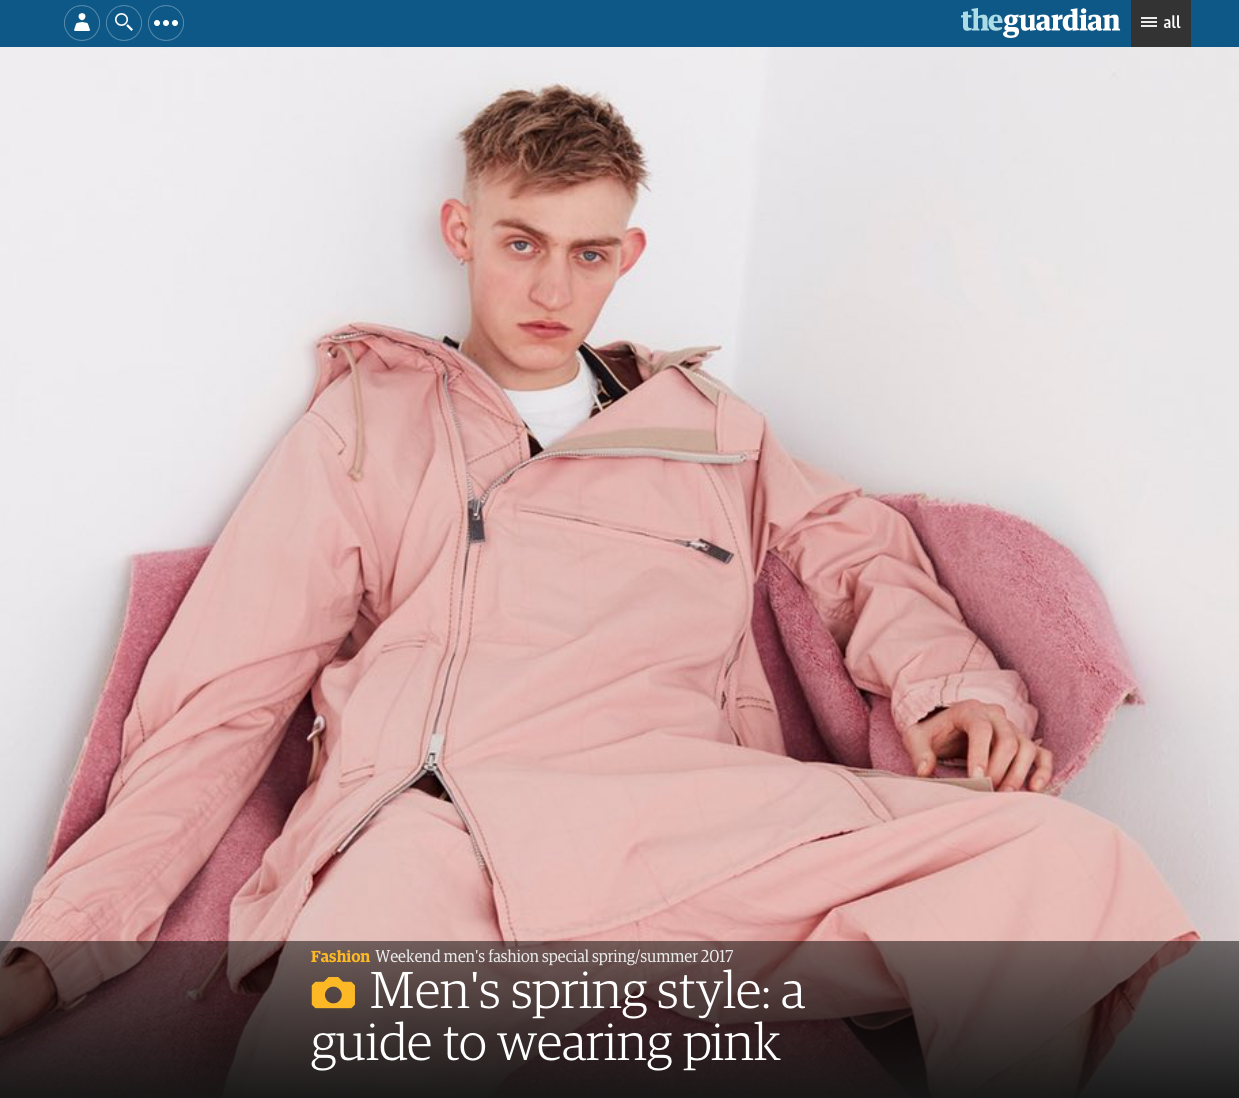 OUR DARLING TEE IS FEATURED IN GUARDIAN FASHION'S ONLINE ARTICLE: 'Men's spring style: a guide to wearing pink'  READ THE ARTICLE  HERE .